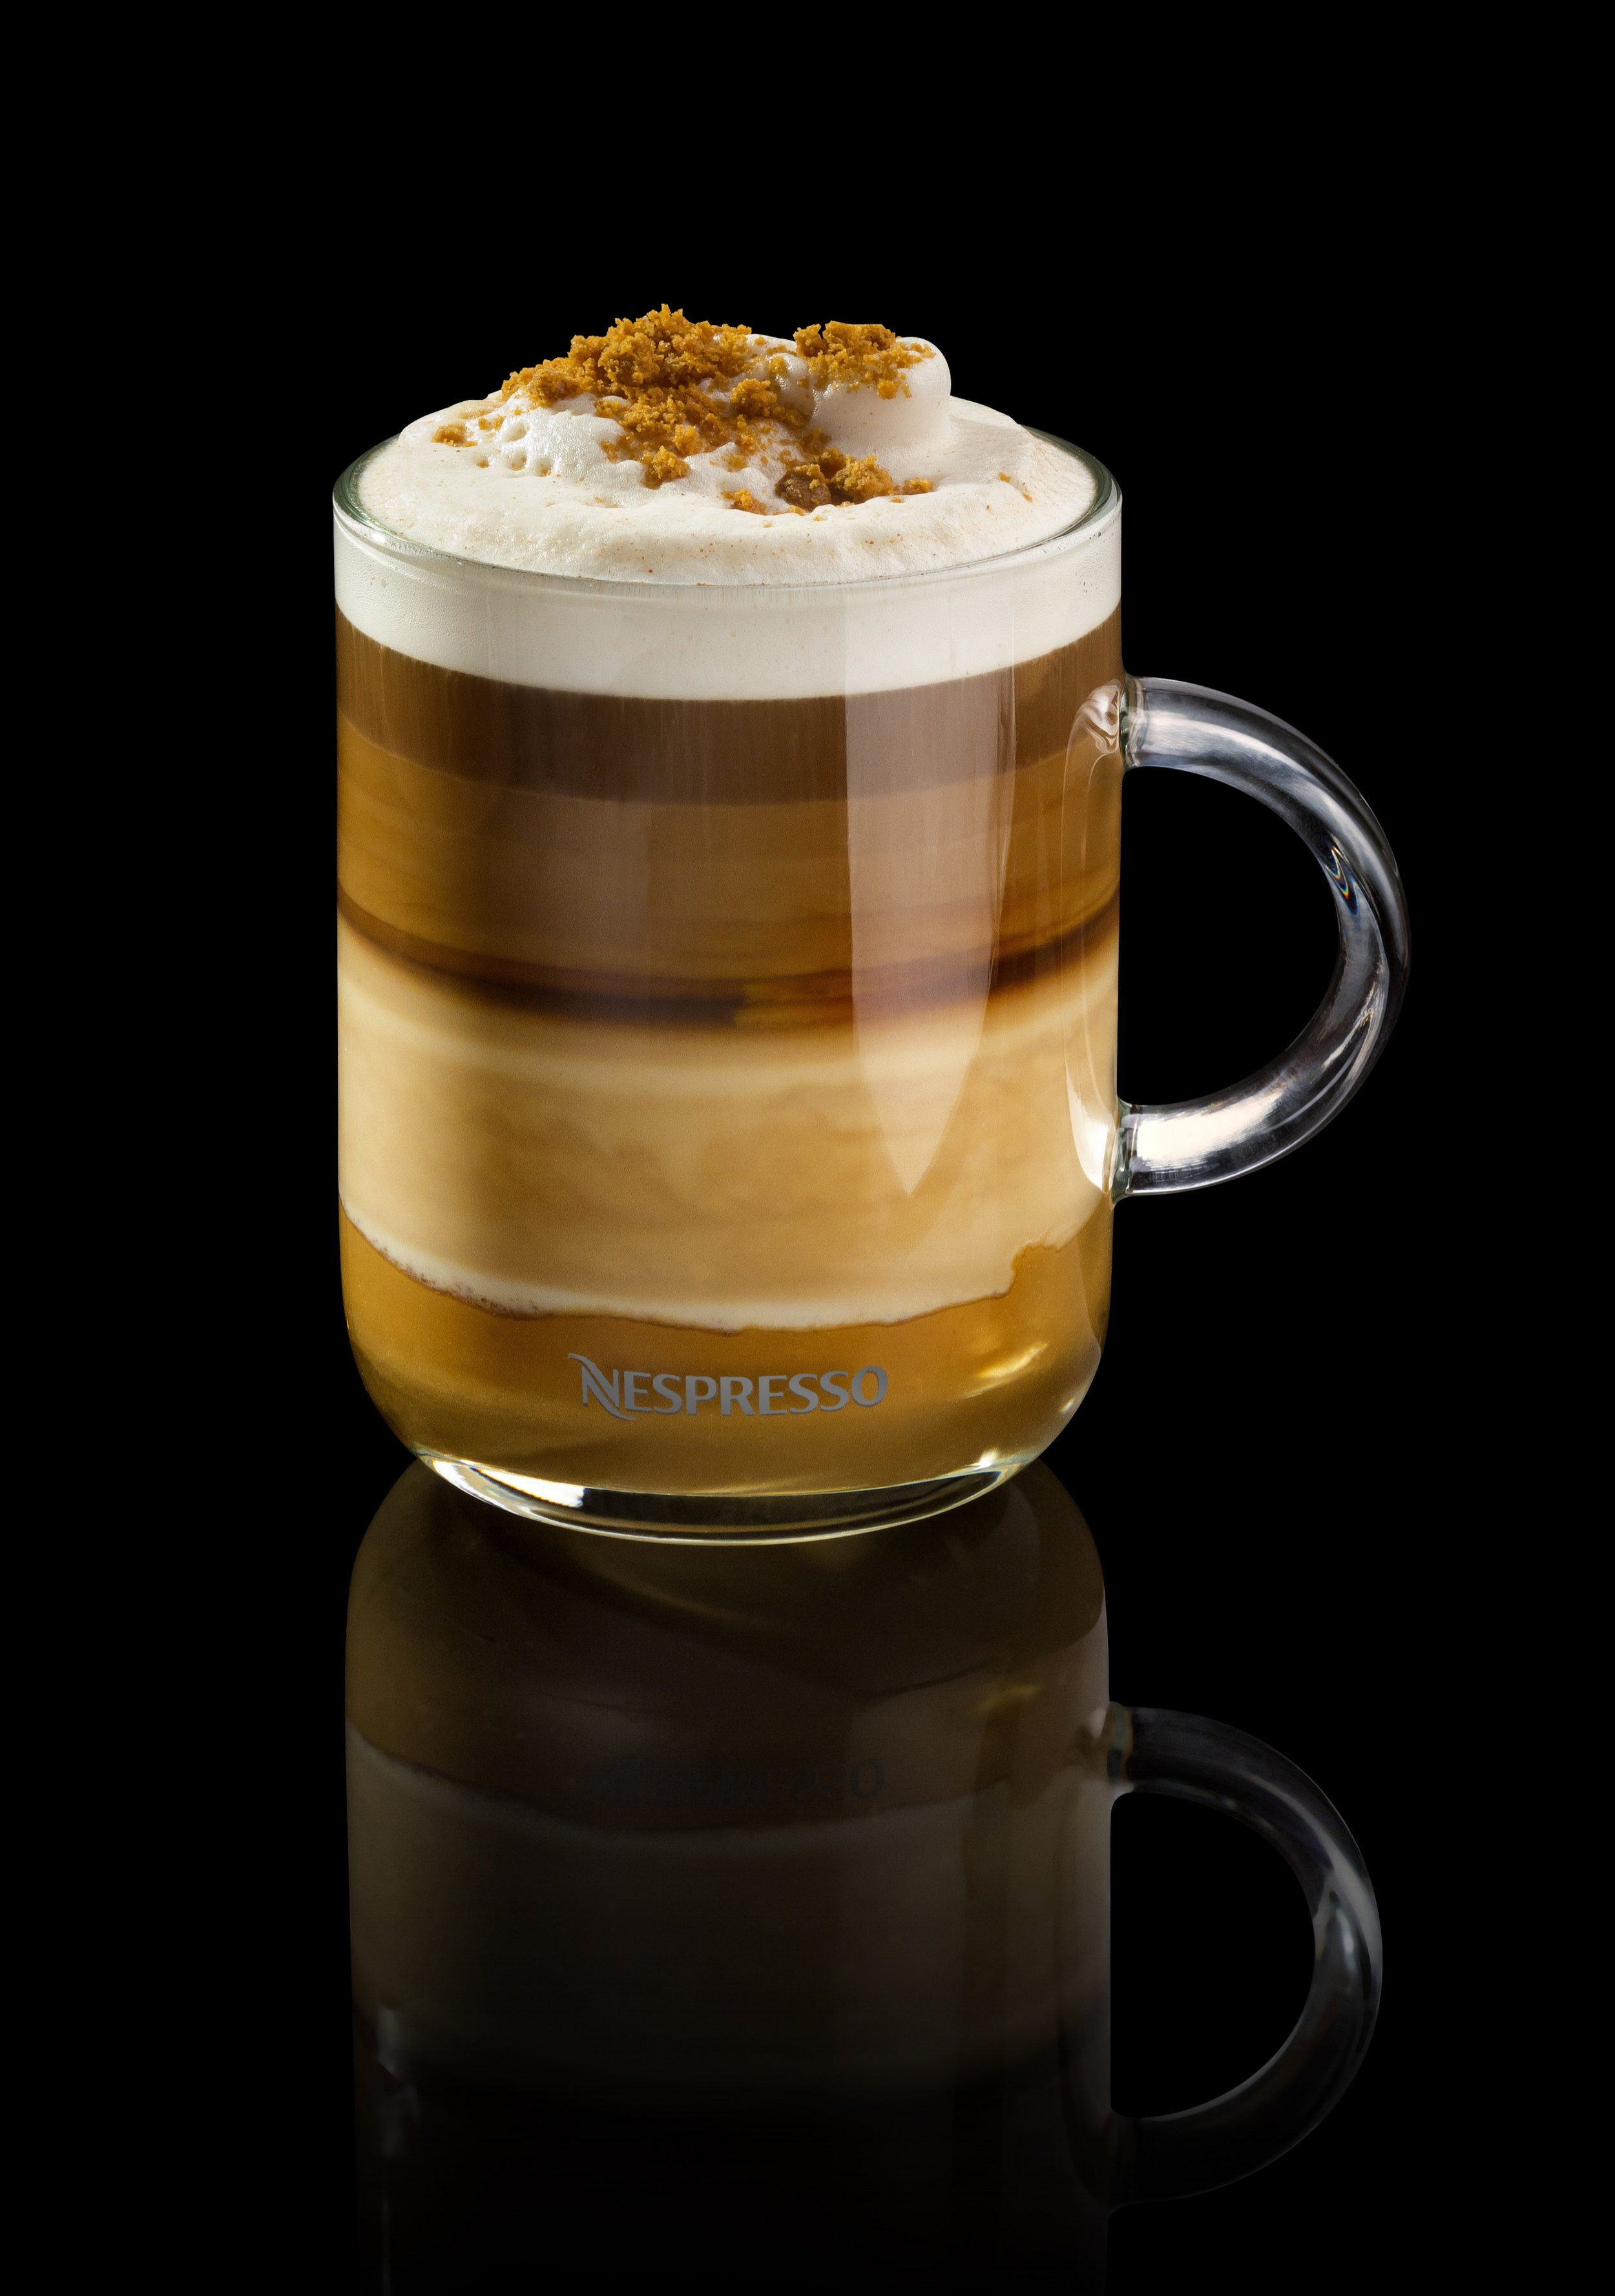 Nespresso January coffee Drink.jpg